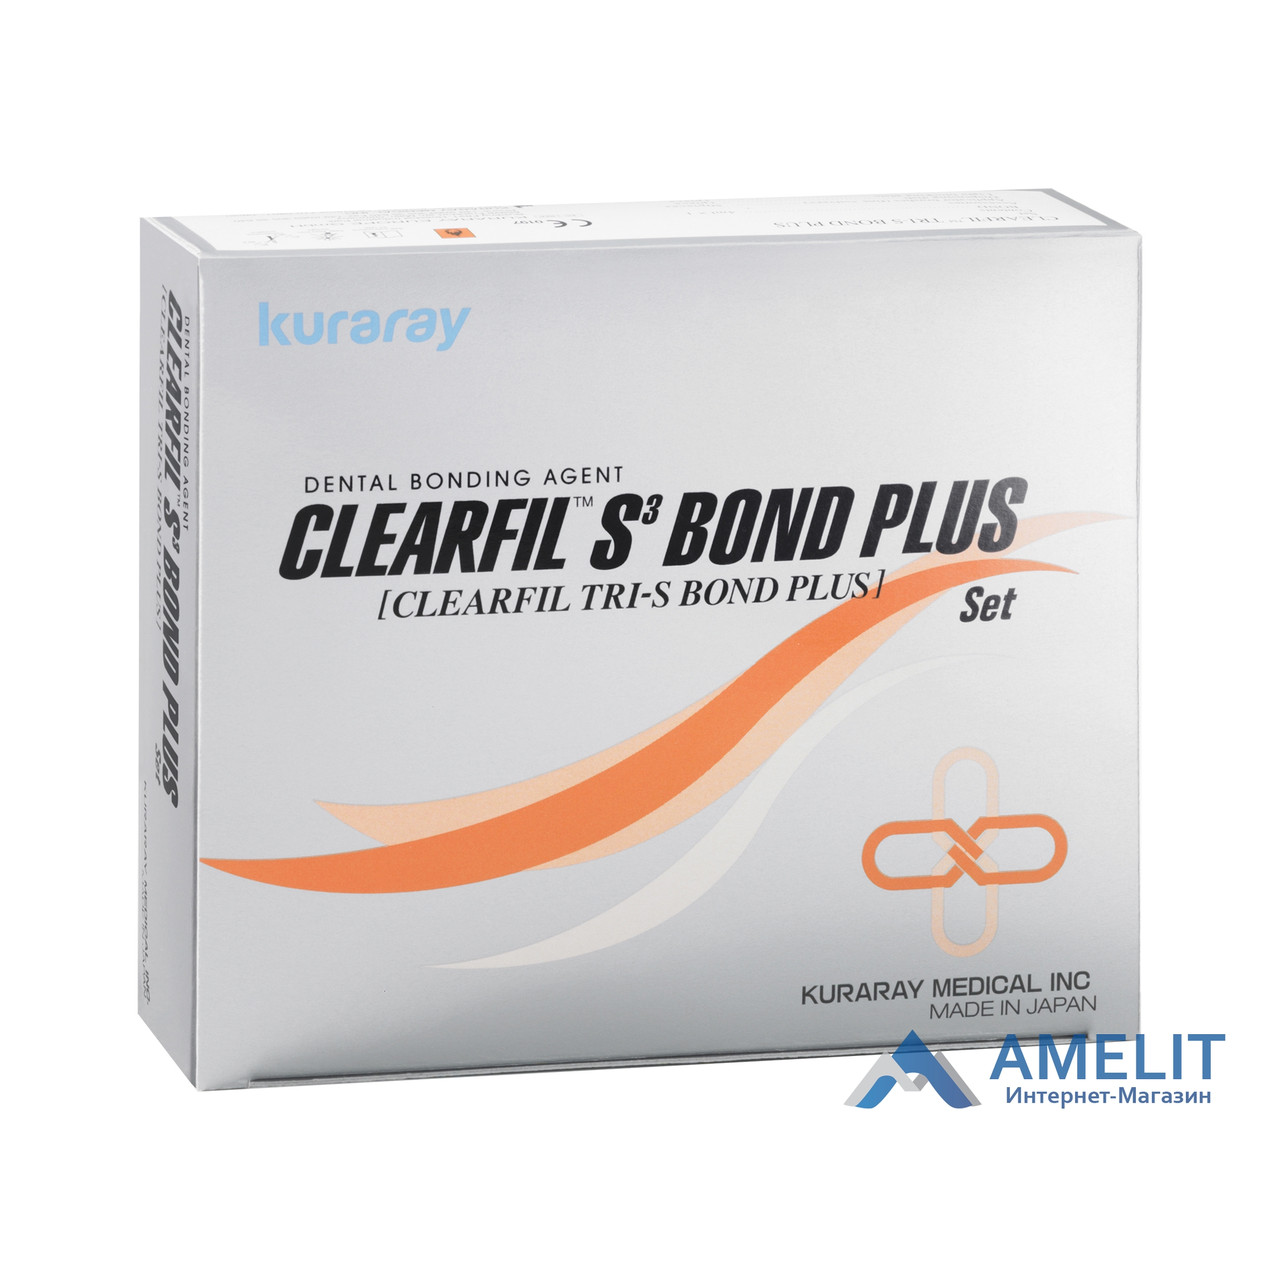 Клирфил C3 бонд плюс ( CLEARFIL TRI-S BOND PLUS,  Kuraray Noritake Dental Inc.), флакон 4мл, фото 1